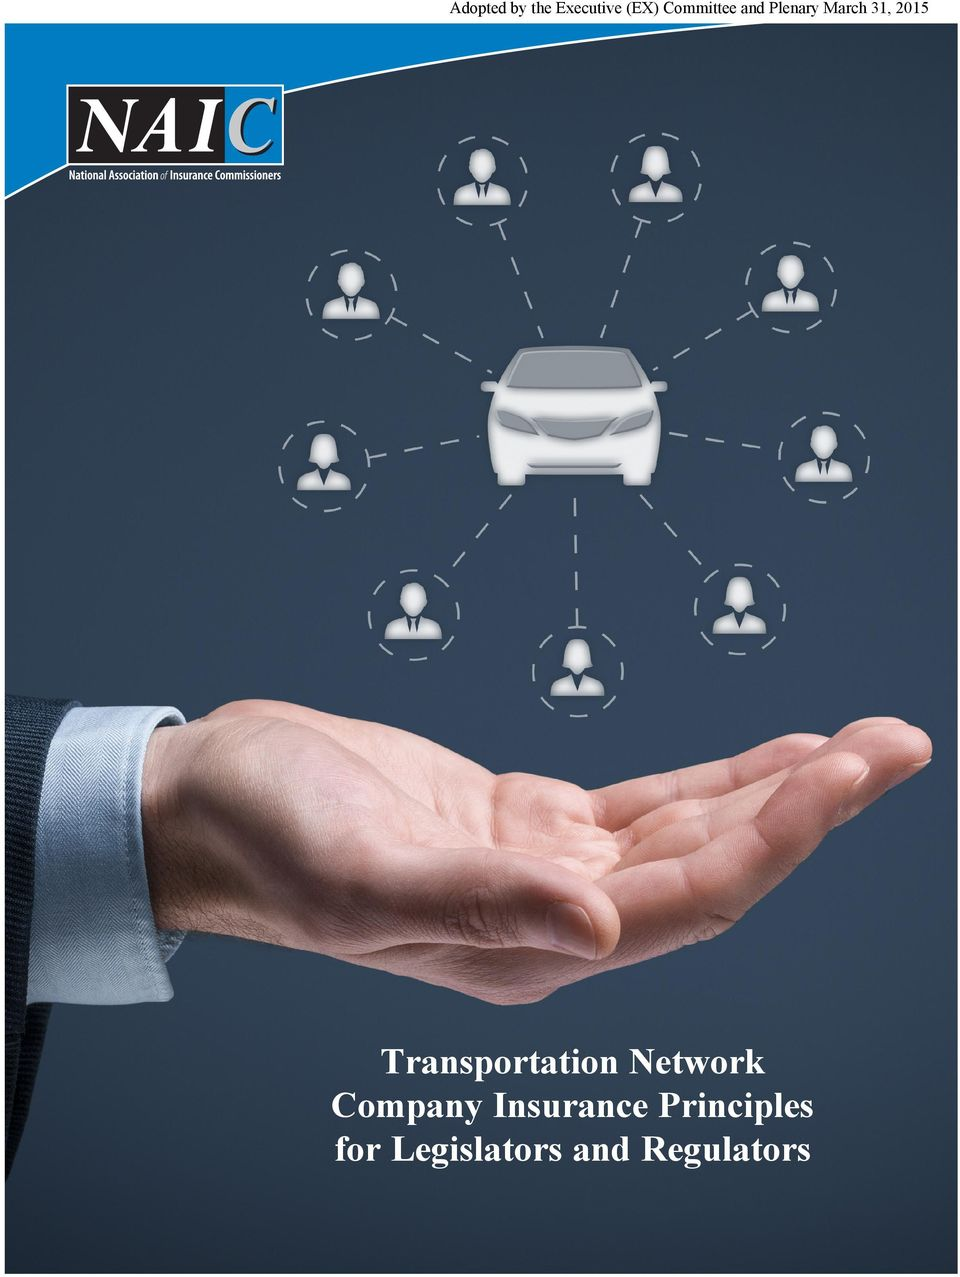 Transportation Network Company